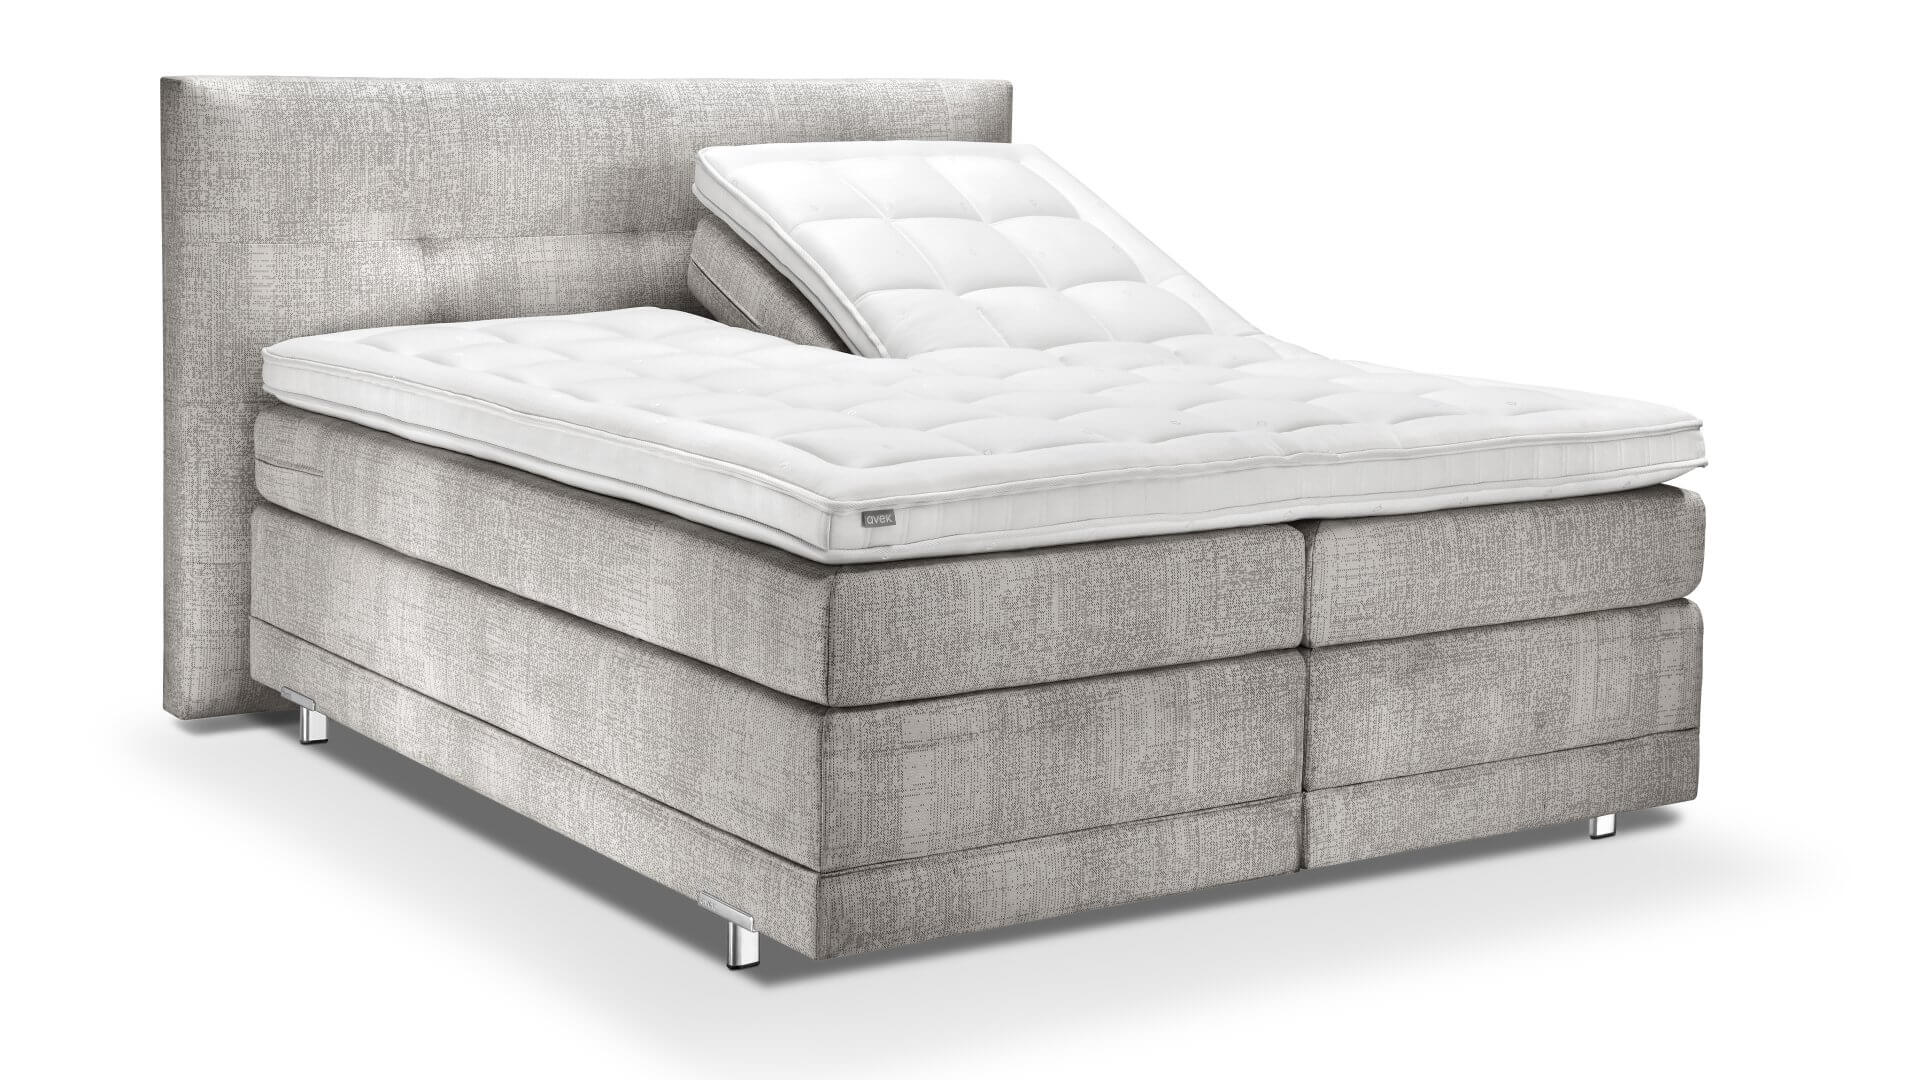 Boxspring Avek Noflik, model State